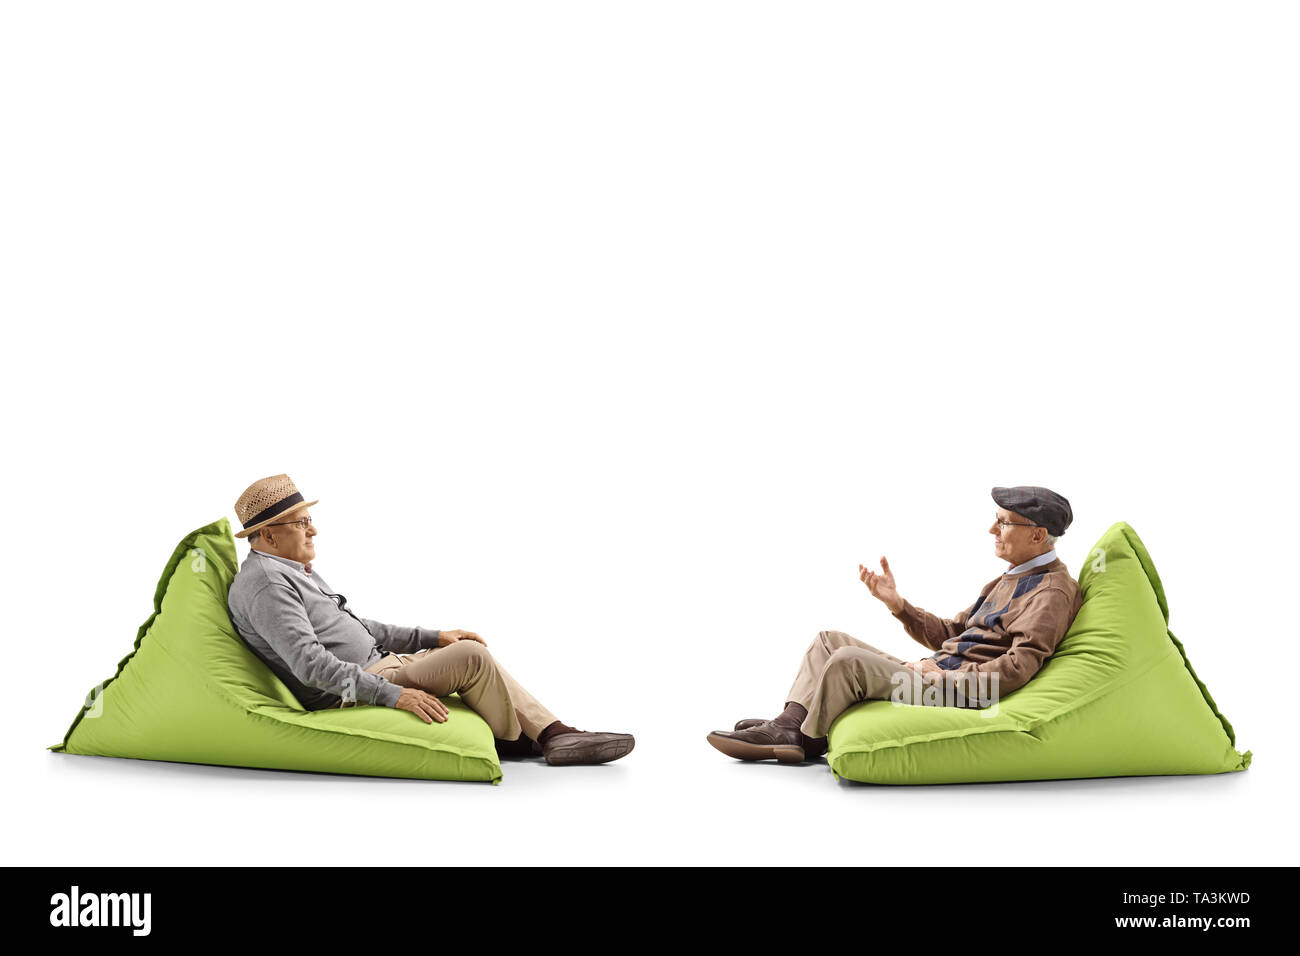 Full length profile shot of two senior men sitting on bean bags and having a conversation isolated on white background - Stock Image